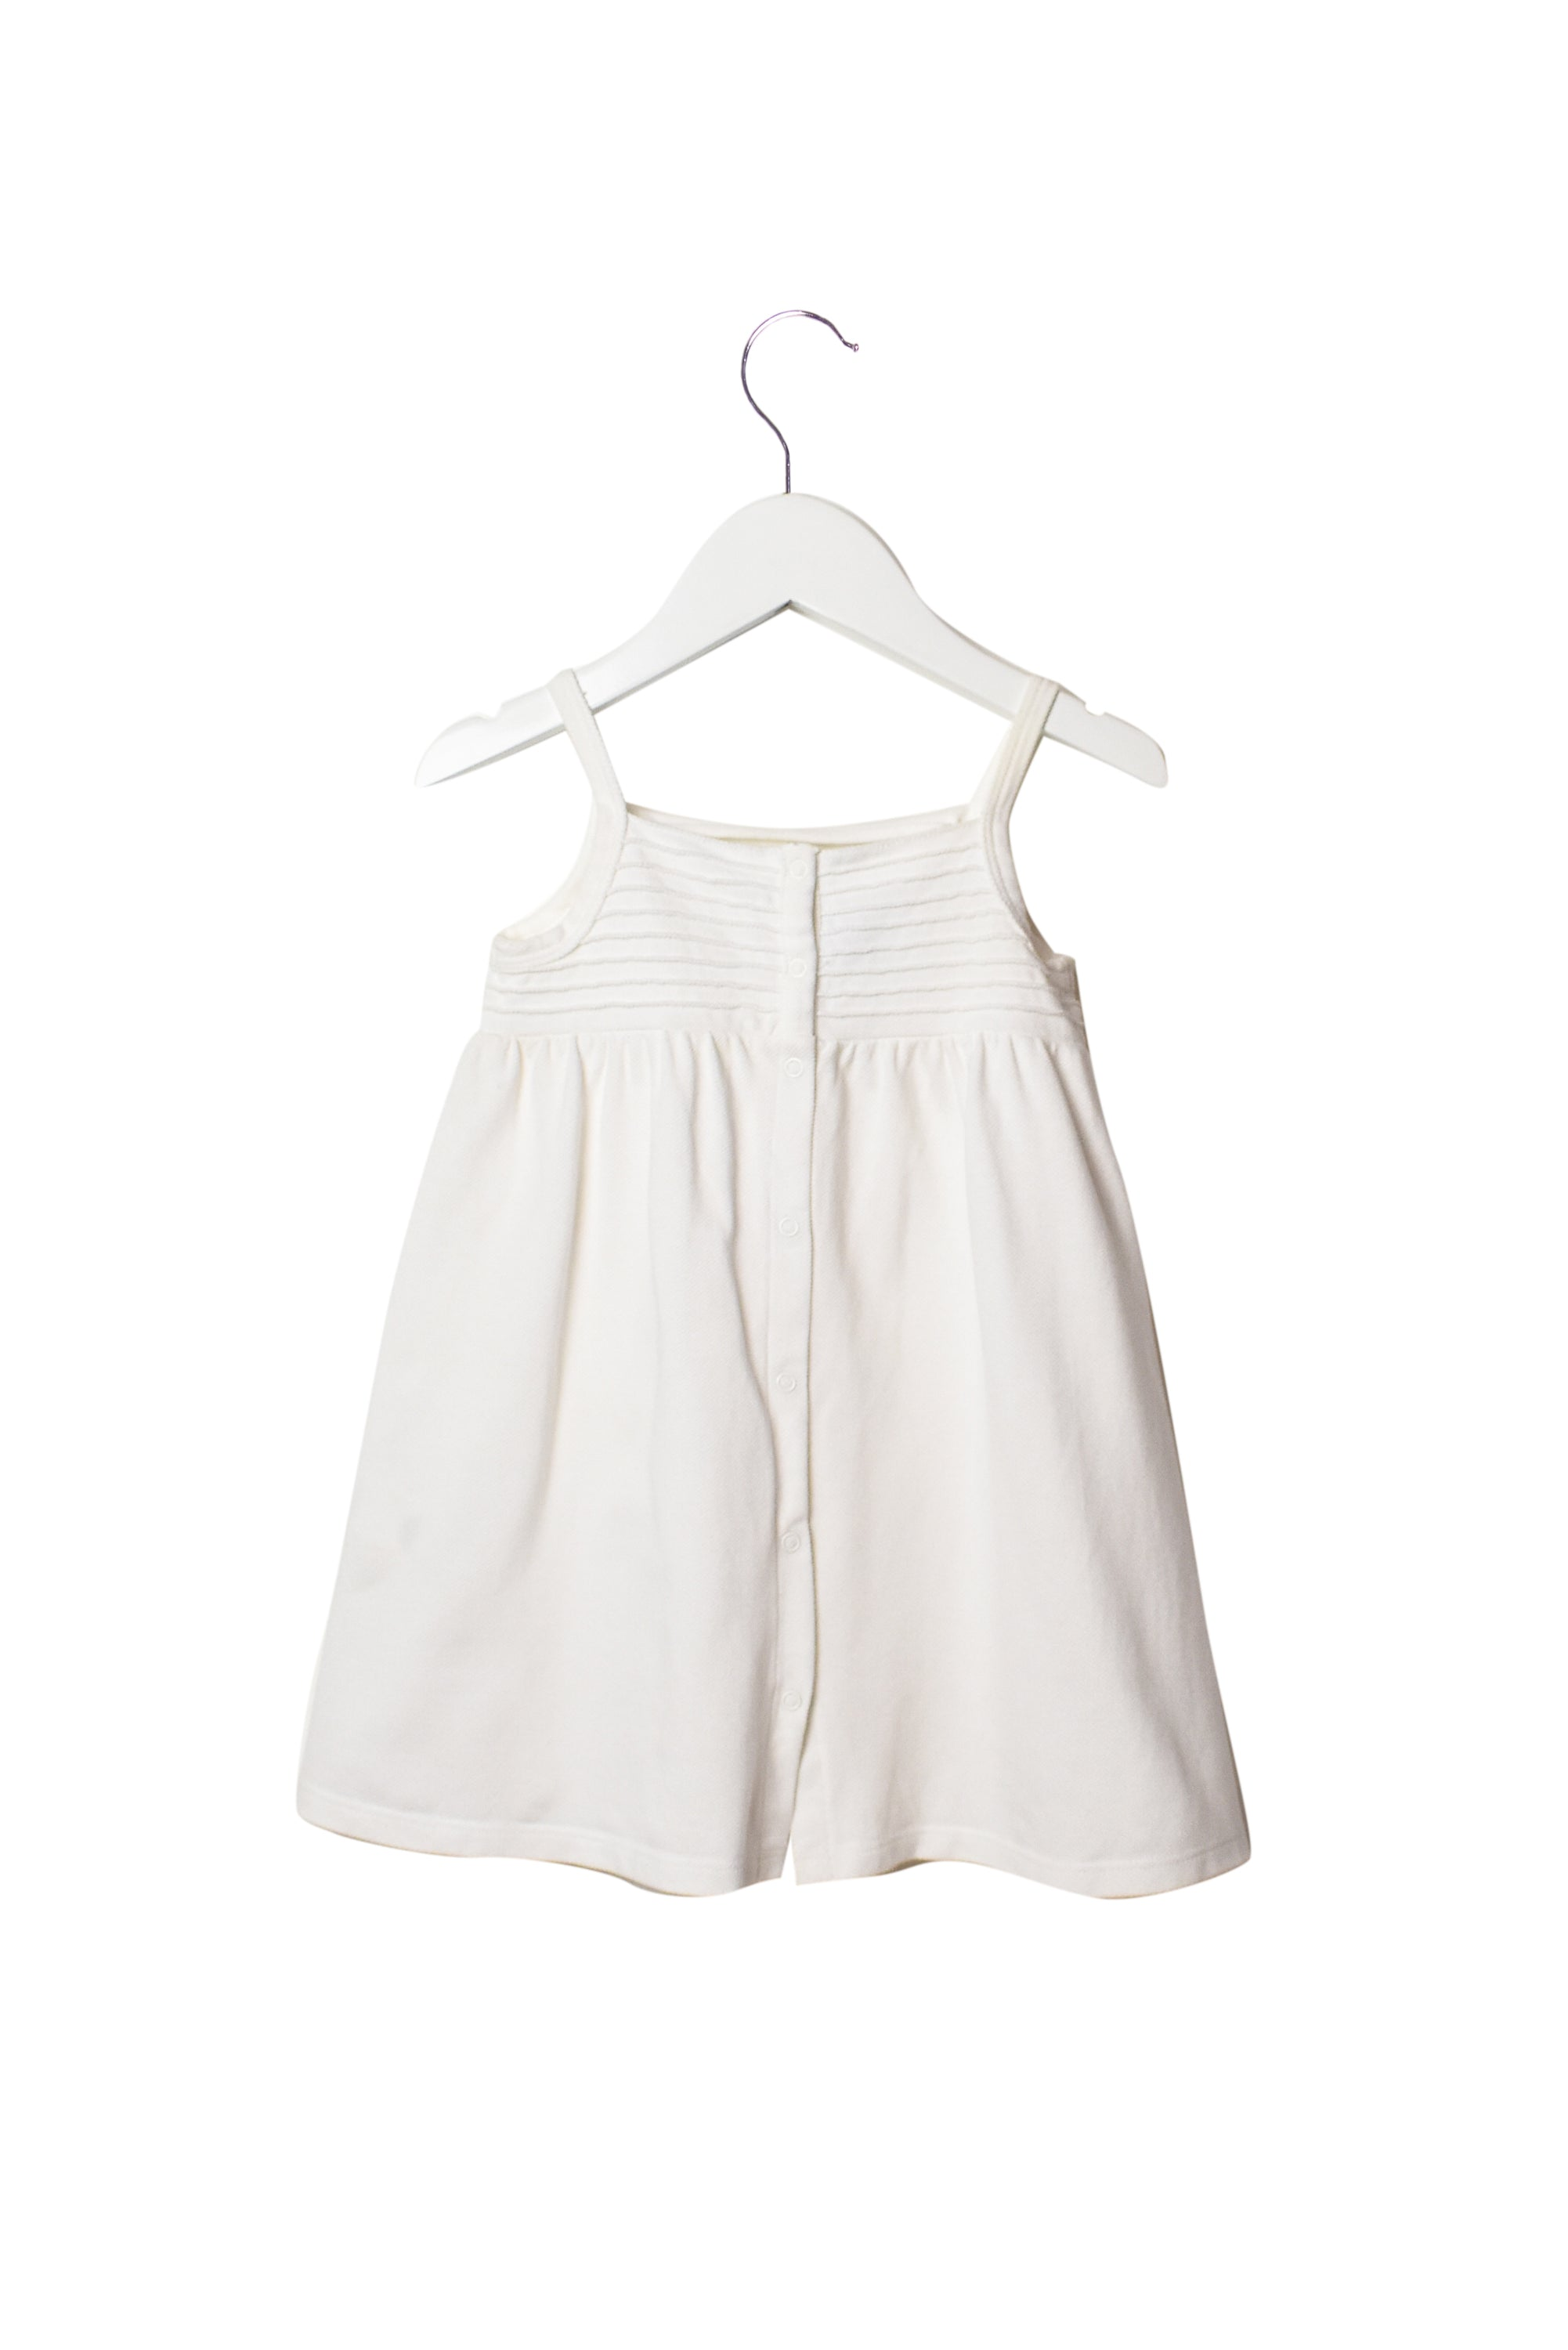 10008113 Petit Bateau Kids ~ Dress 24M at Retykle